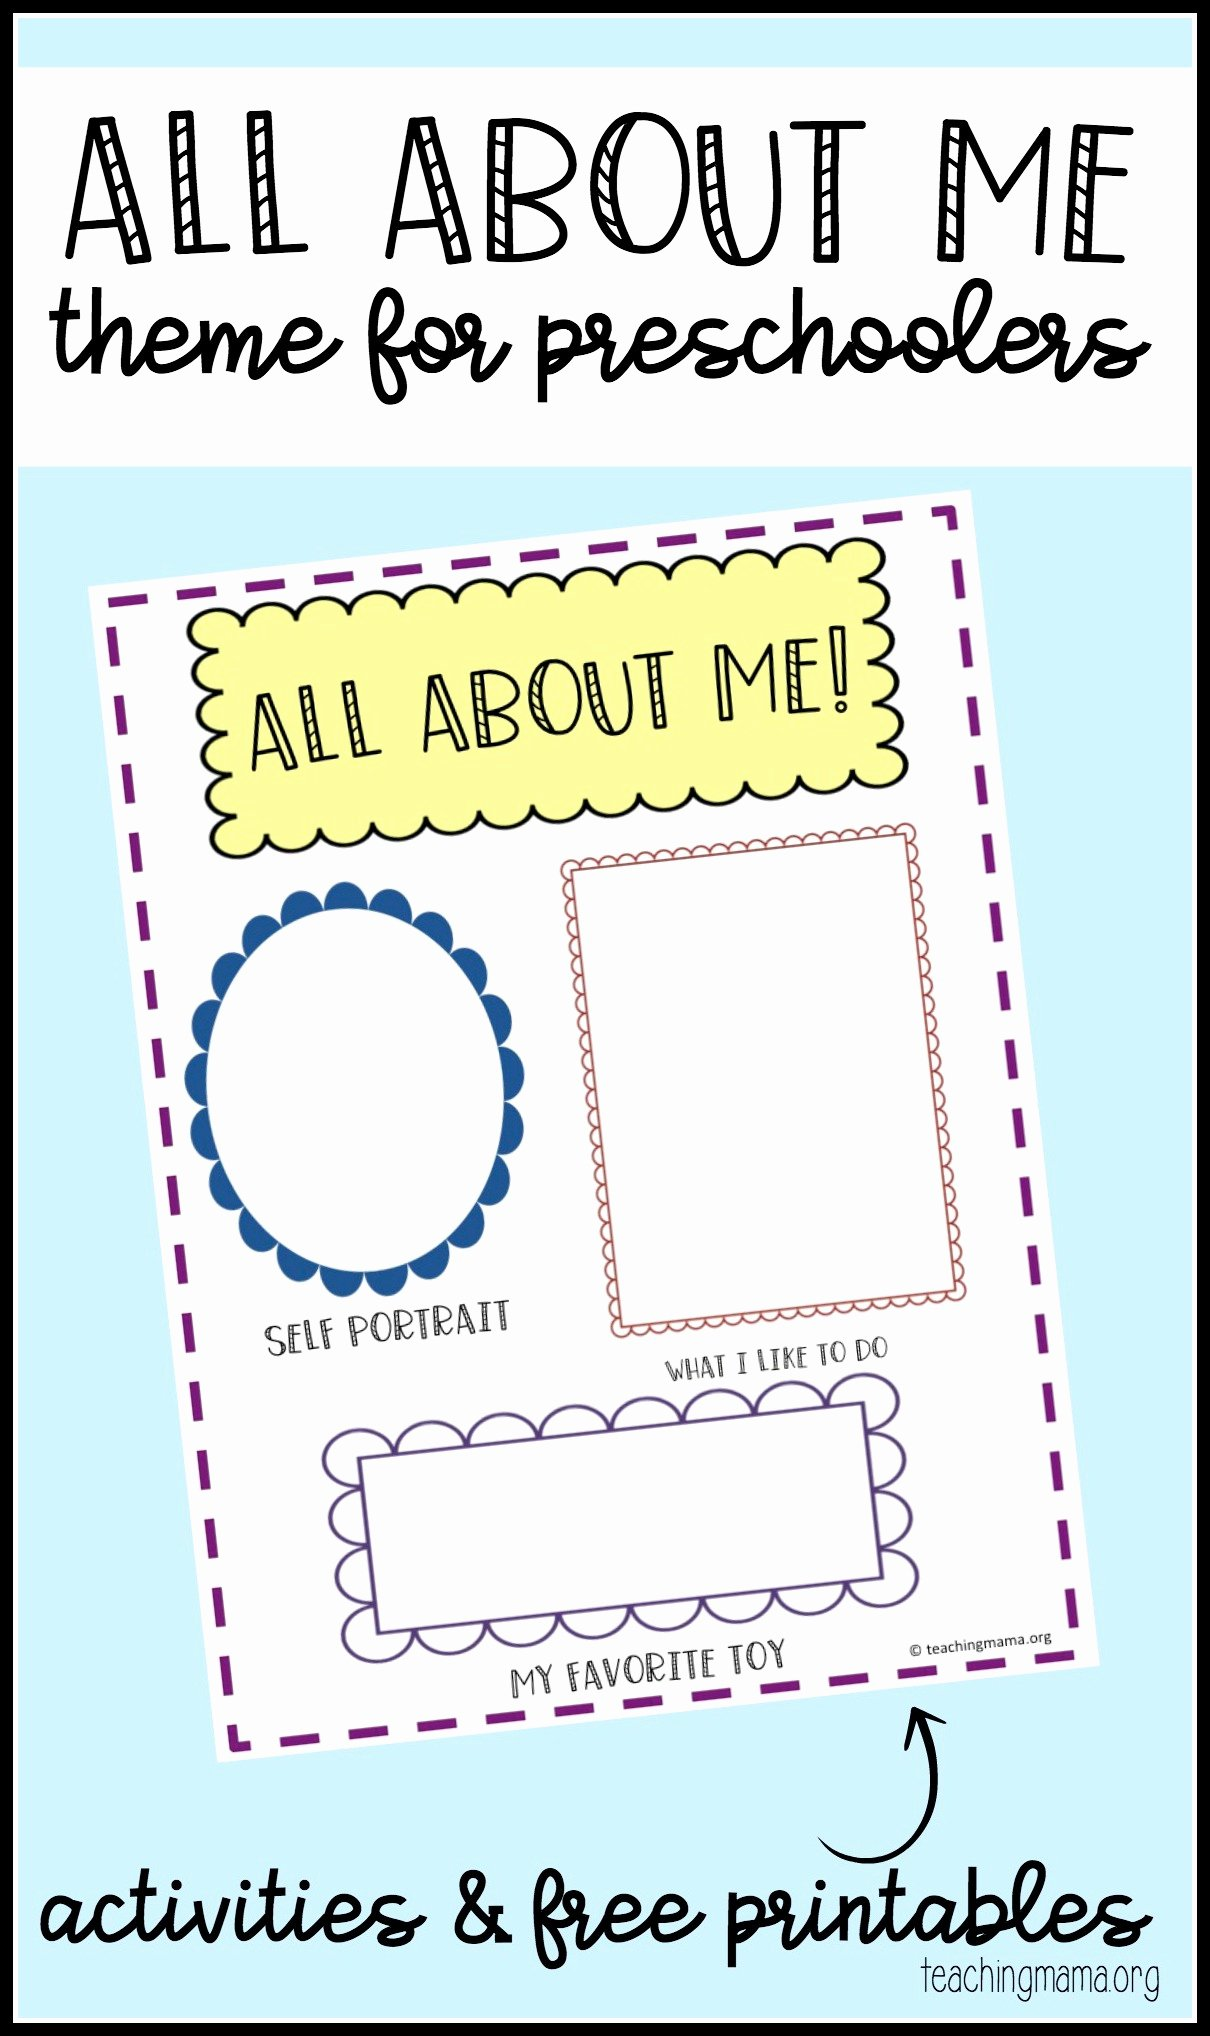 All About Me Printable Worksheet Luxury All About Me Preschool theme